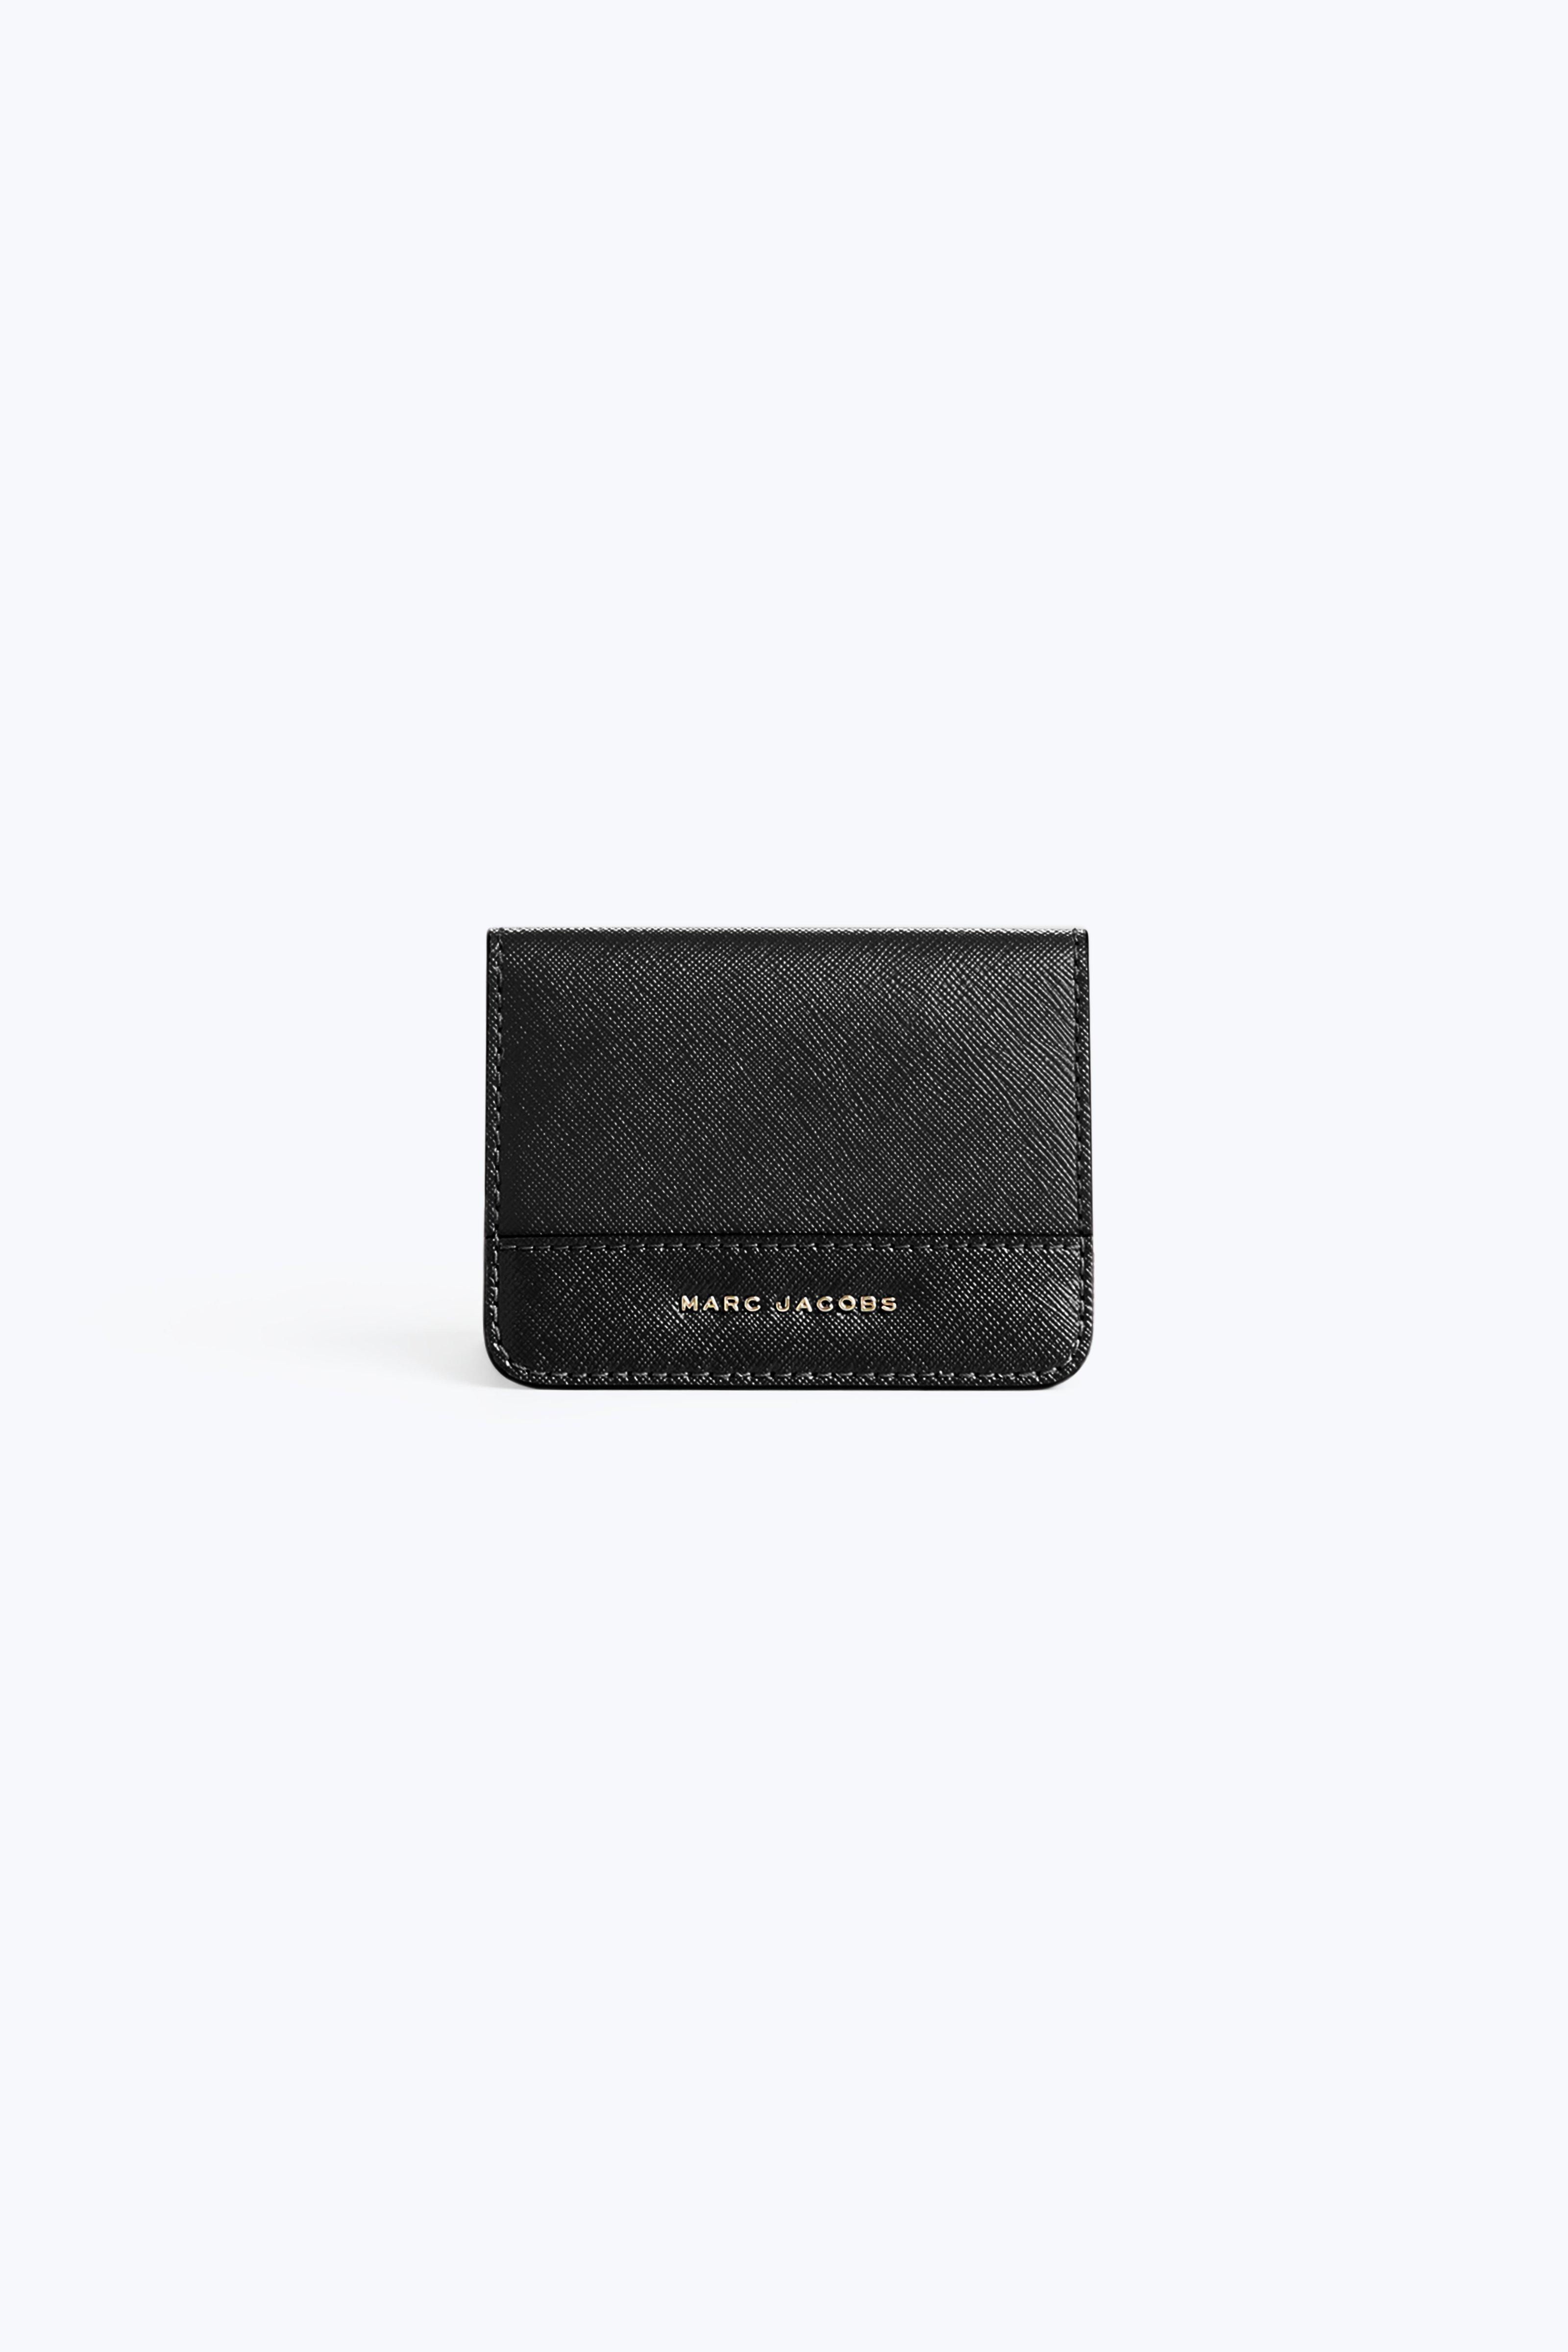 Marc Jacobs Saffiano Colorblocked Train Pass Case In Black / Berry